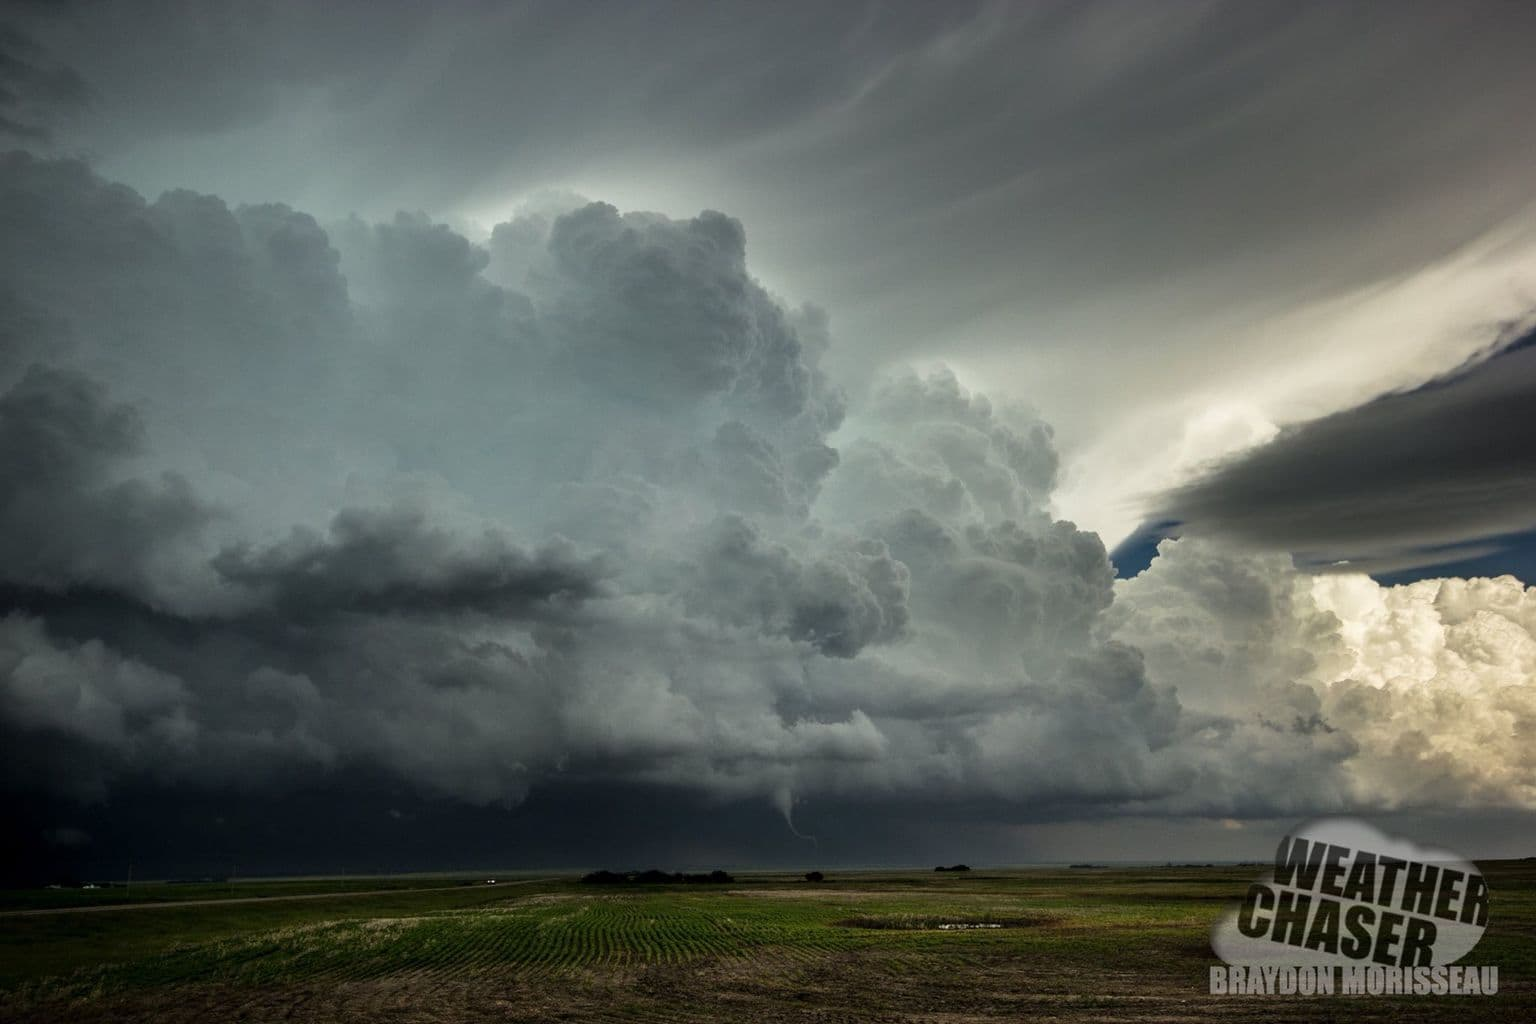 July 5th 2014 Tornado Outbreak in Saskatchewan, Canada! 6 tornados across the province on this day.